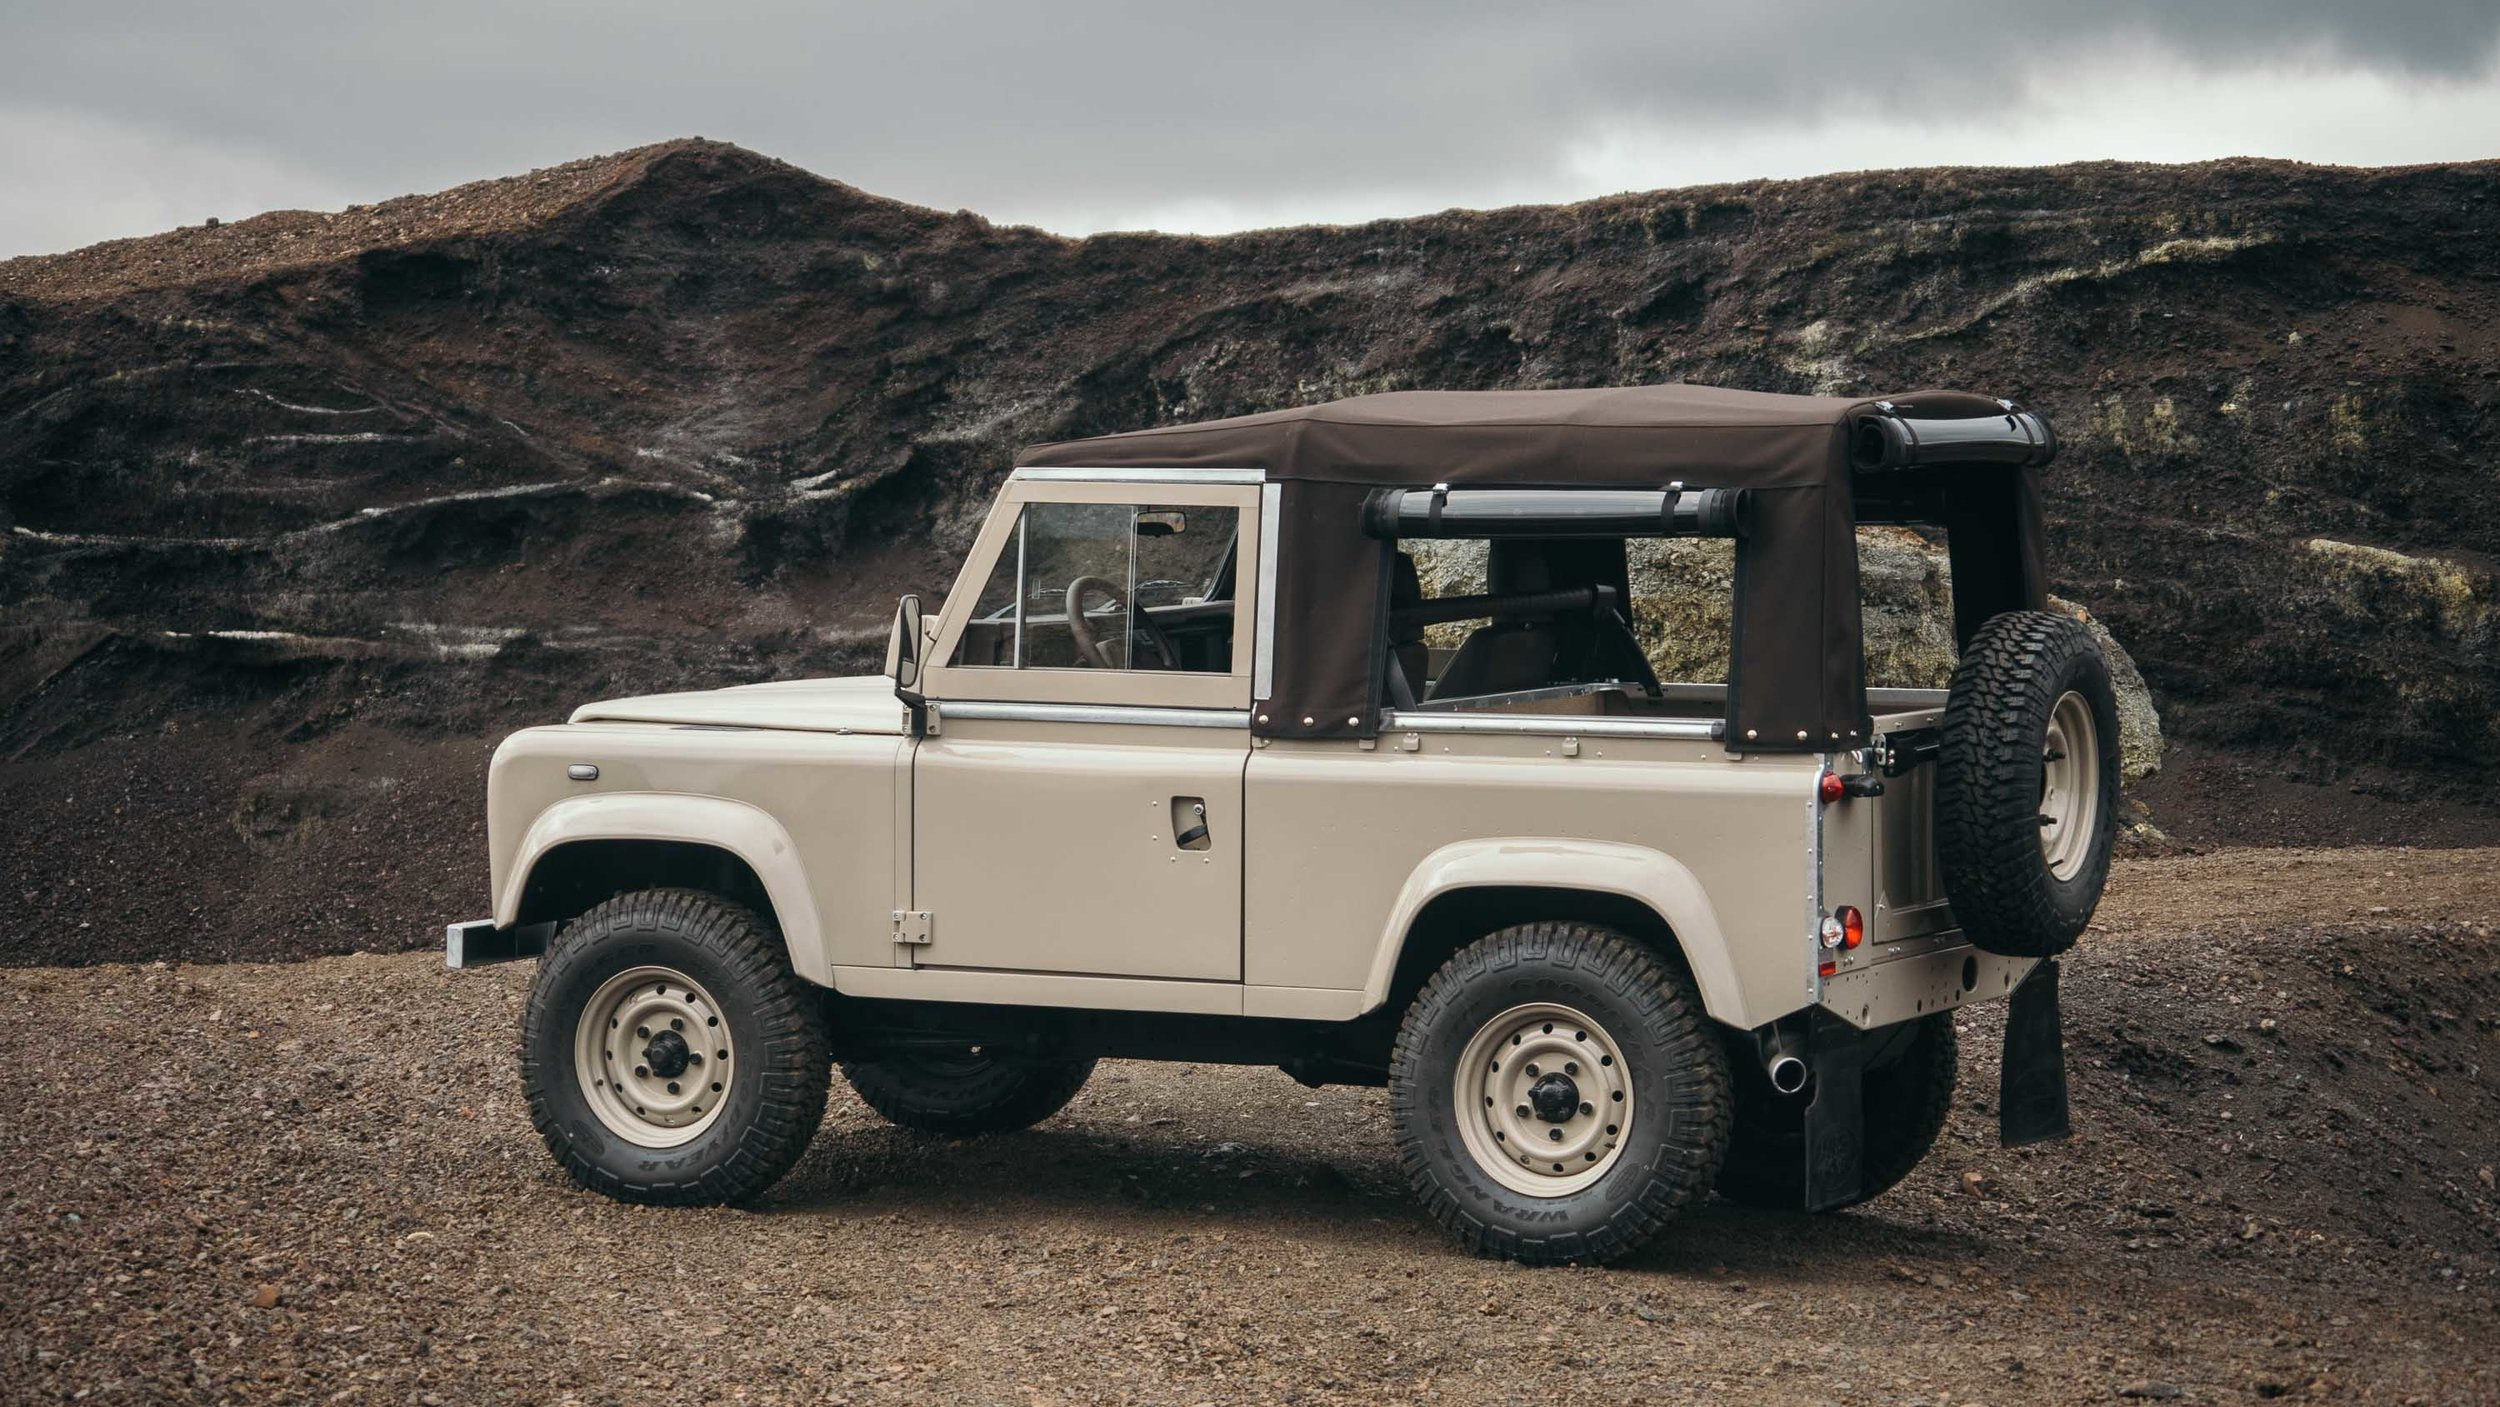 coolnvintage Land Rover Defender (80 of 81).jpg